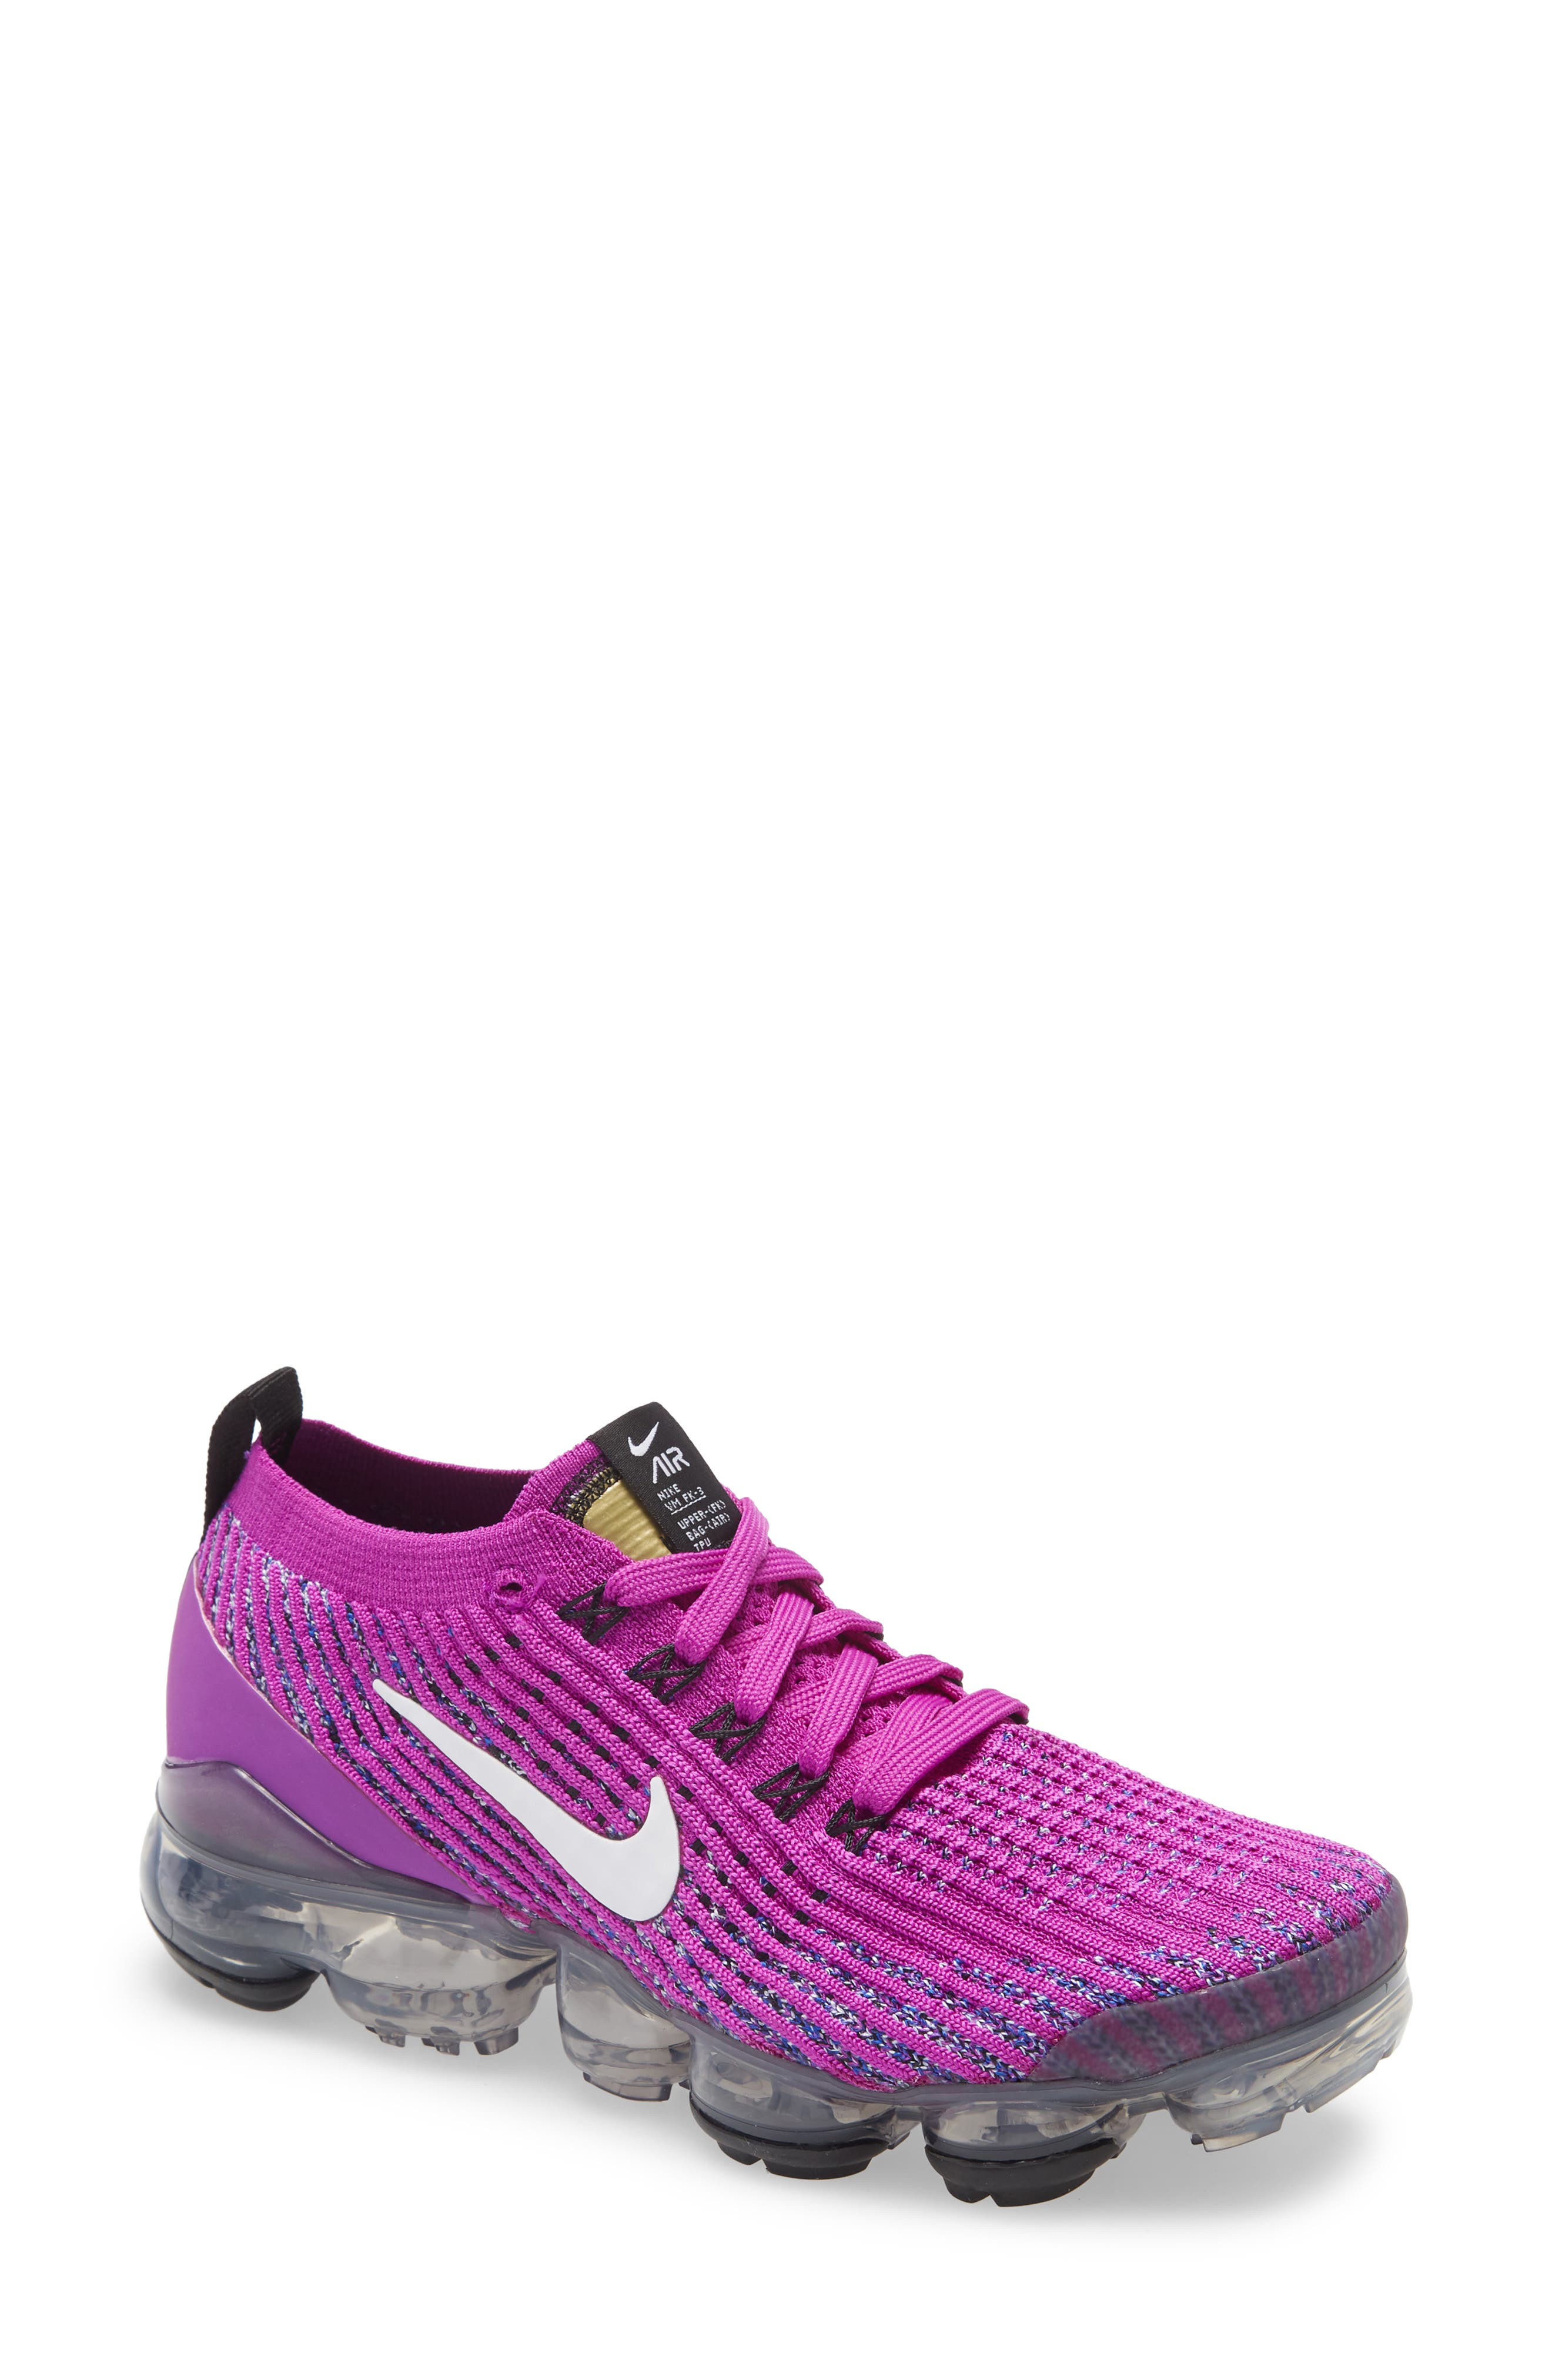 Pin by Anthony Moore on kicks   Nike free shoes, Running